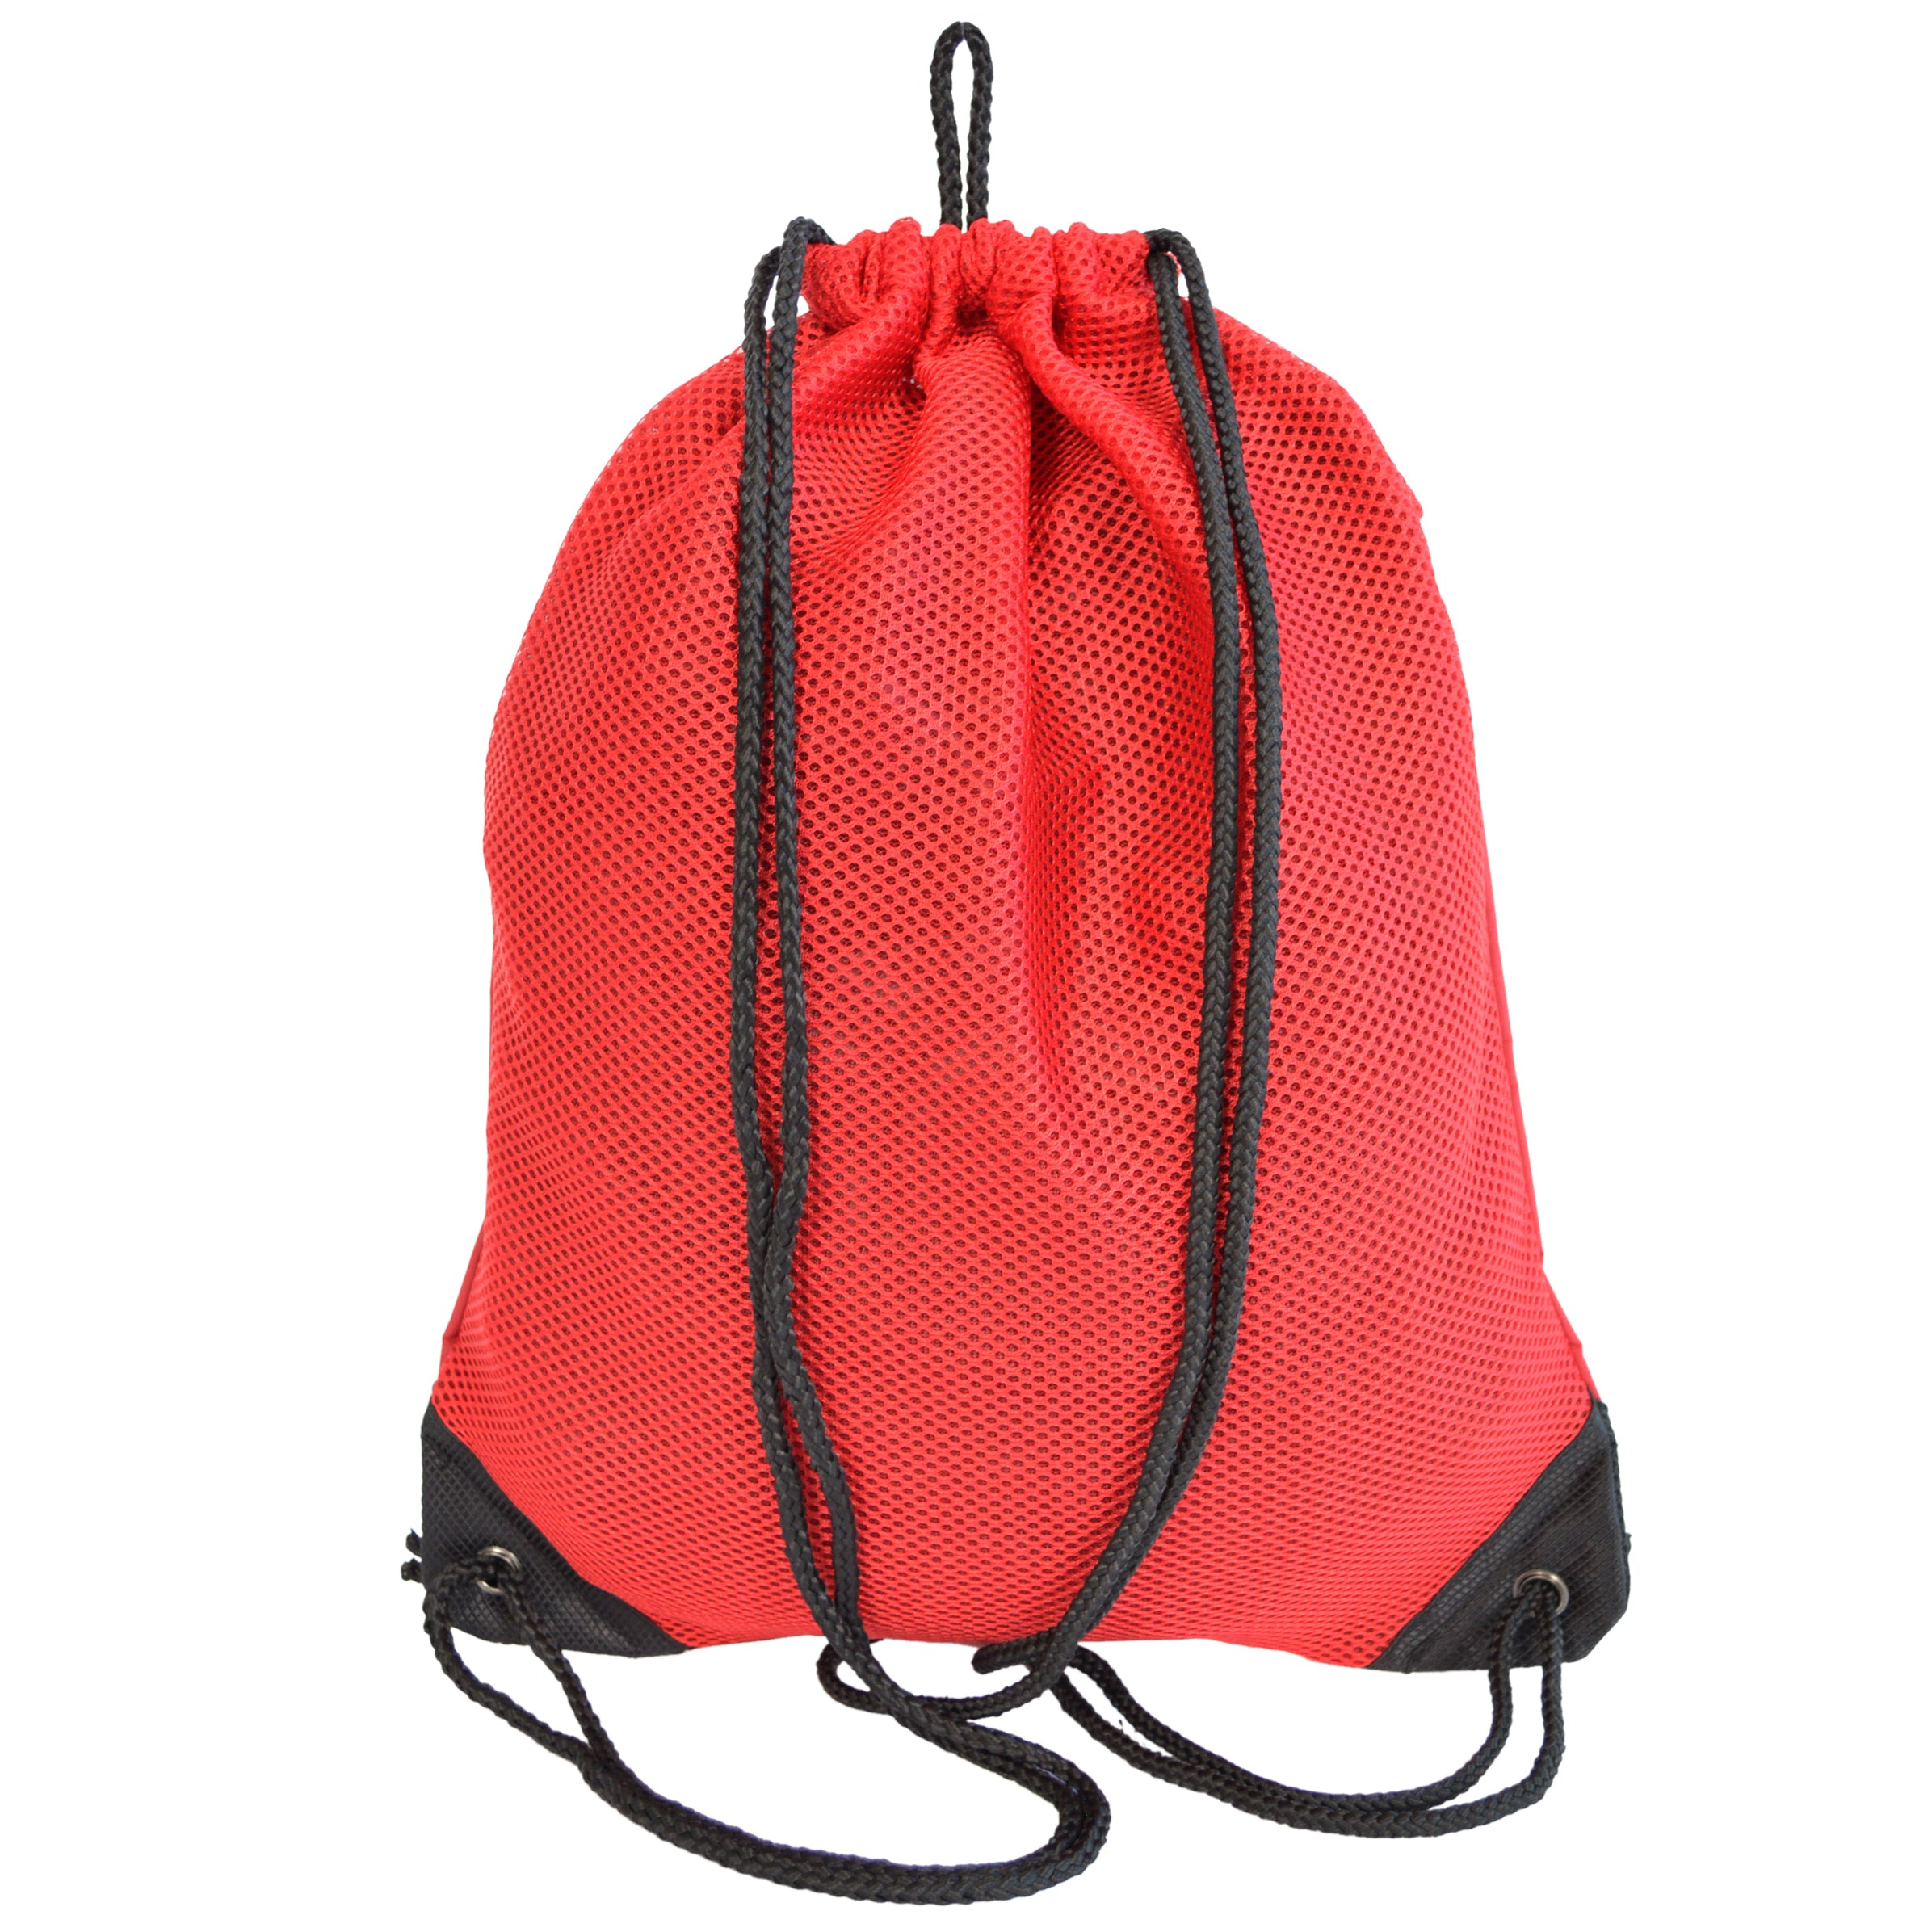 Personalized Mesh Sport Drawstring Backpack